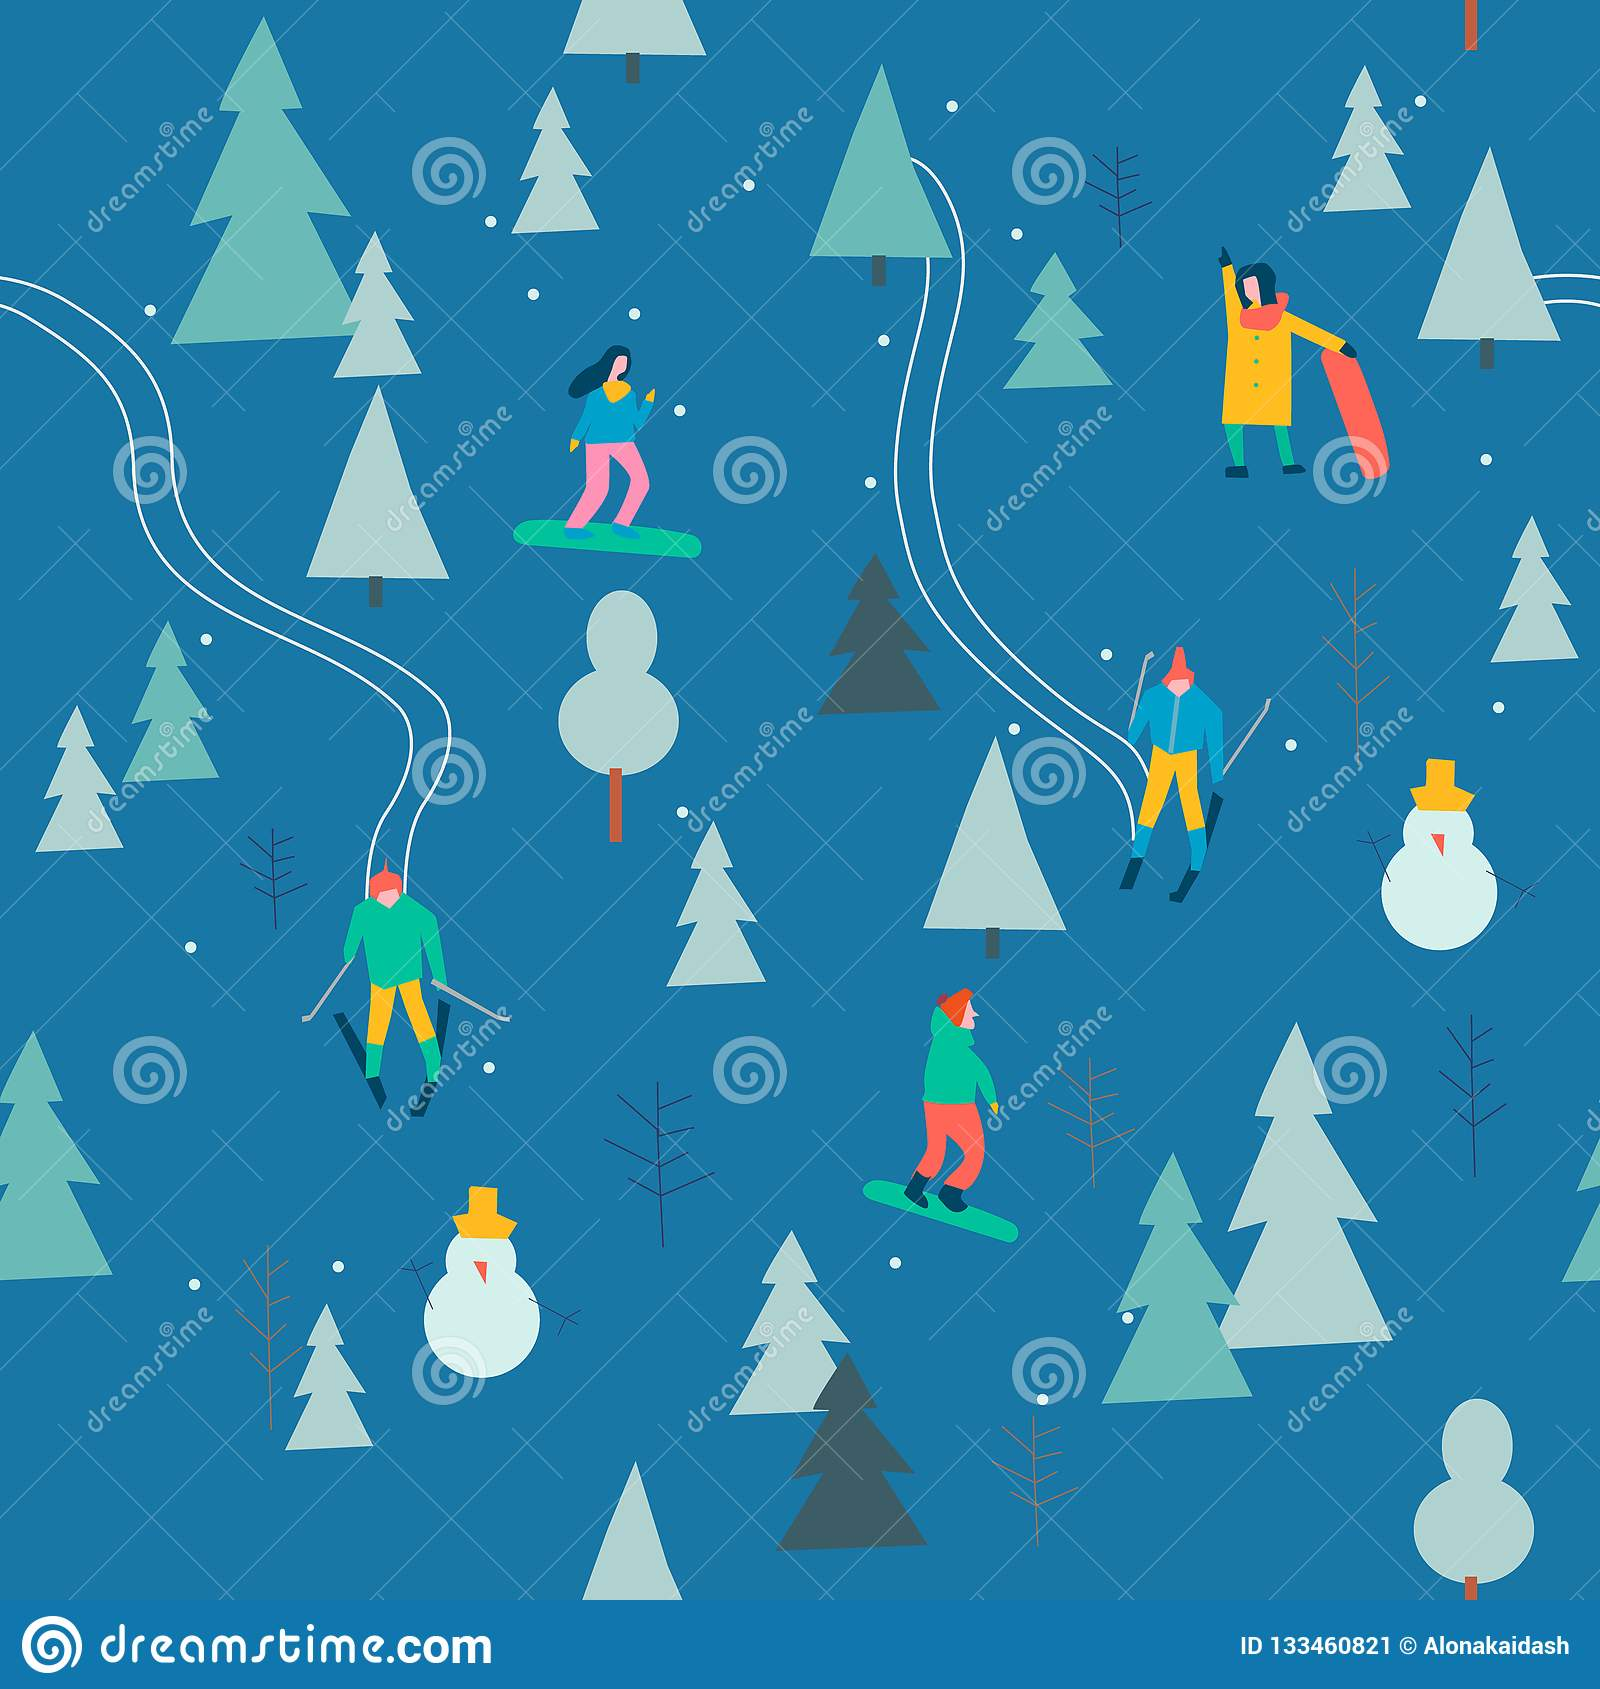 Skiing seamless pattern with people skiing and snowboarding in the snow forest in vector.